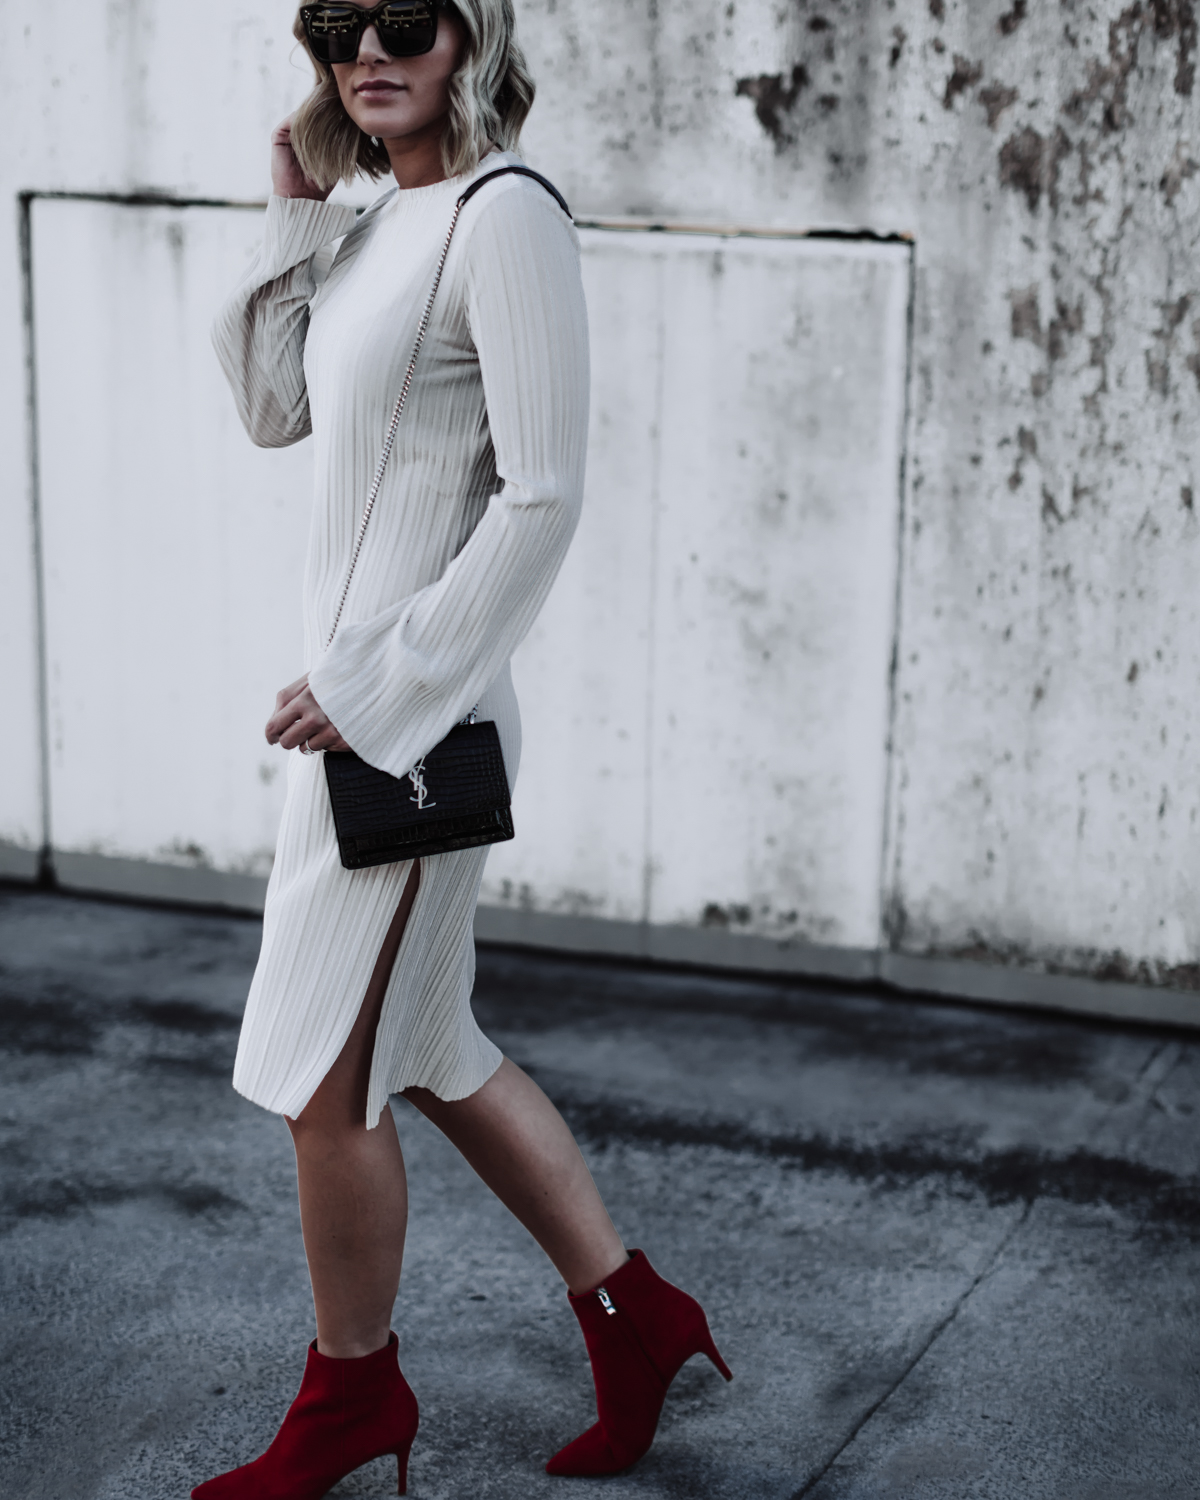 red booties and a pleated velvet dress on Sage Coralli